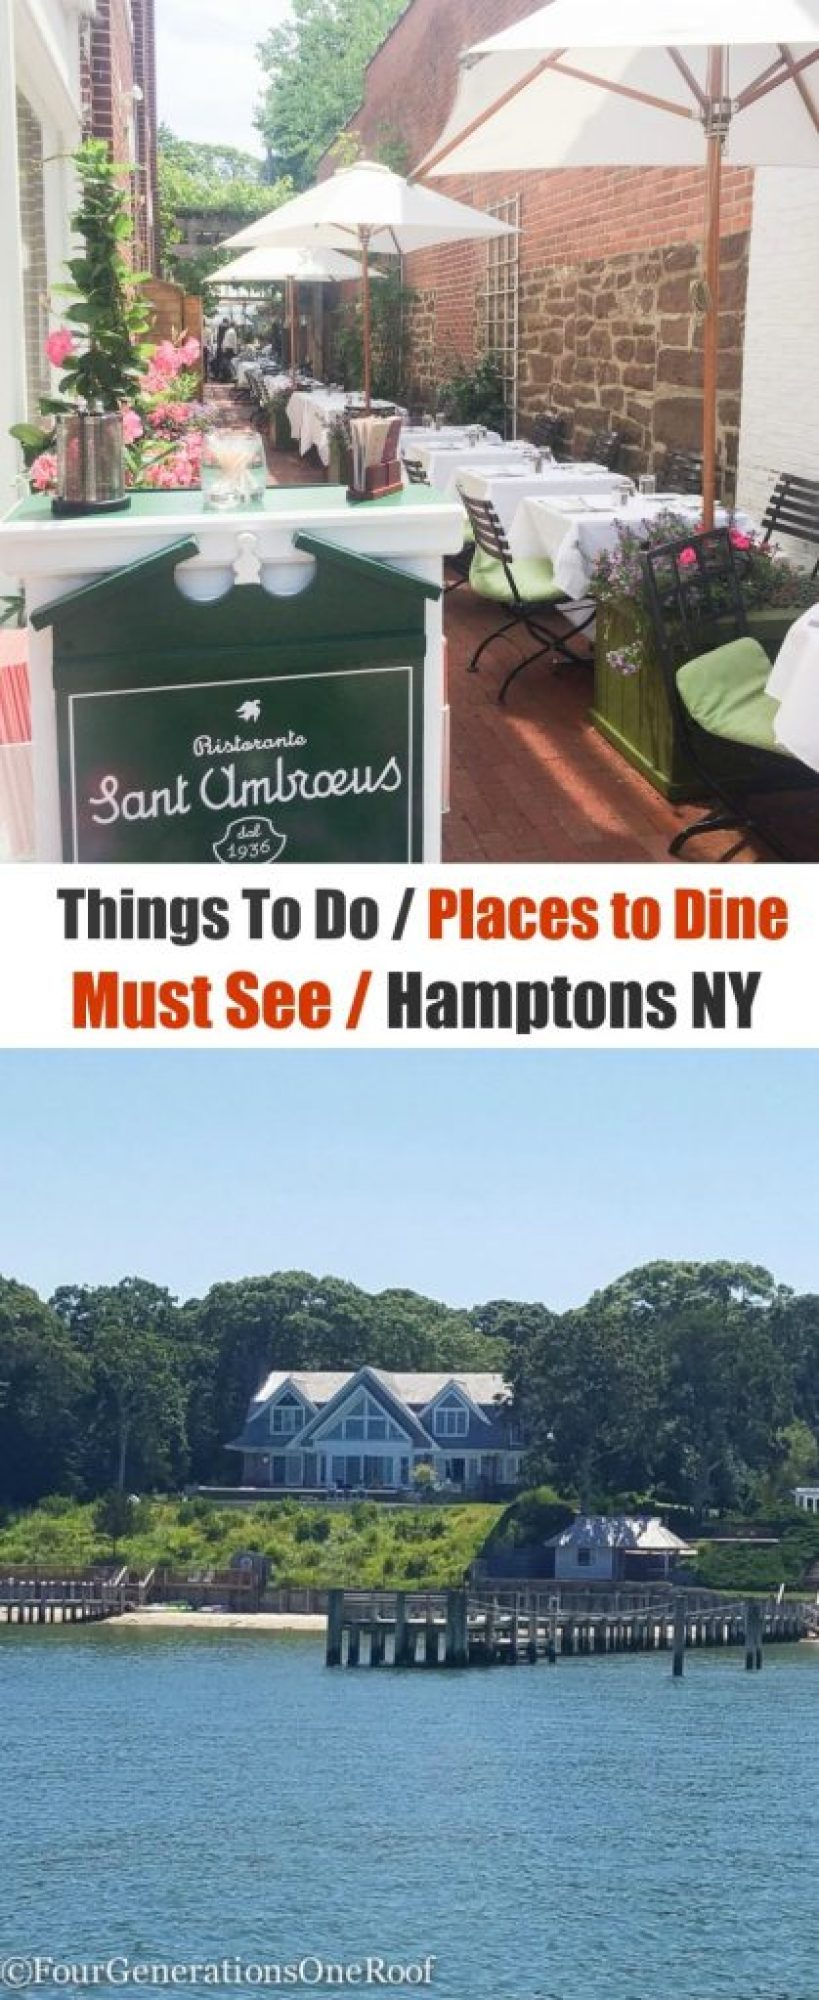 Things to Do / Places to Stay / Must See/ Hamptons NY